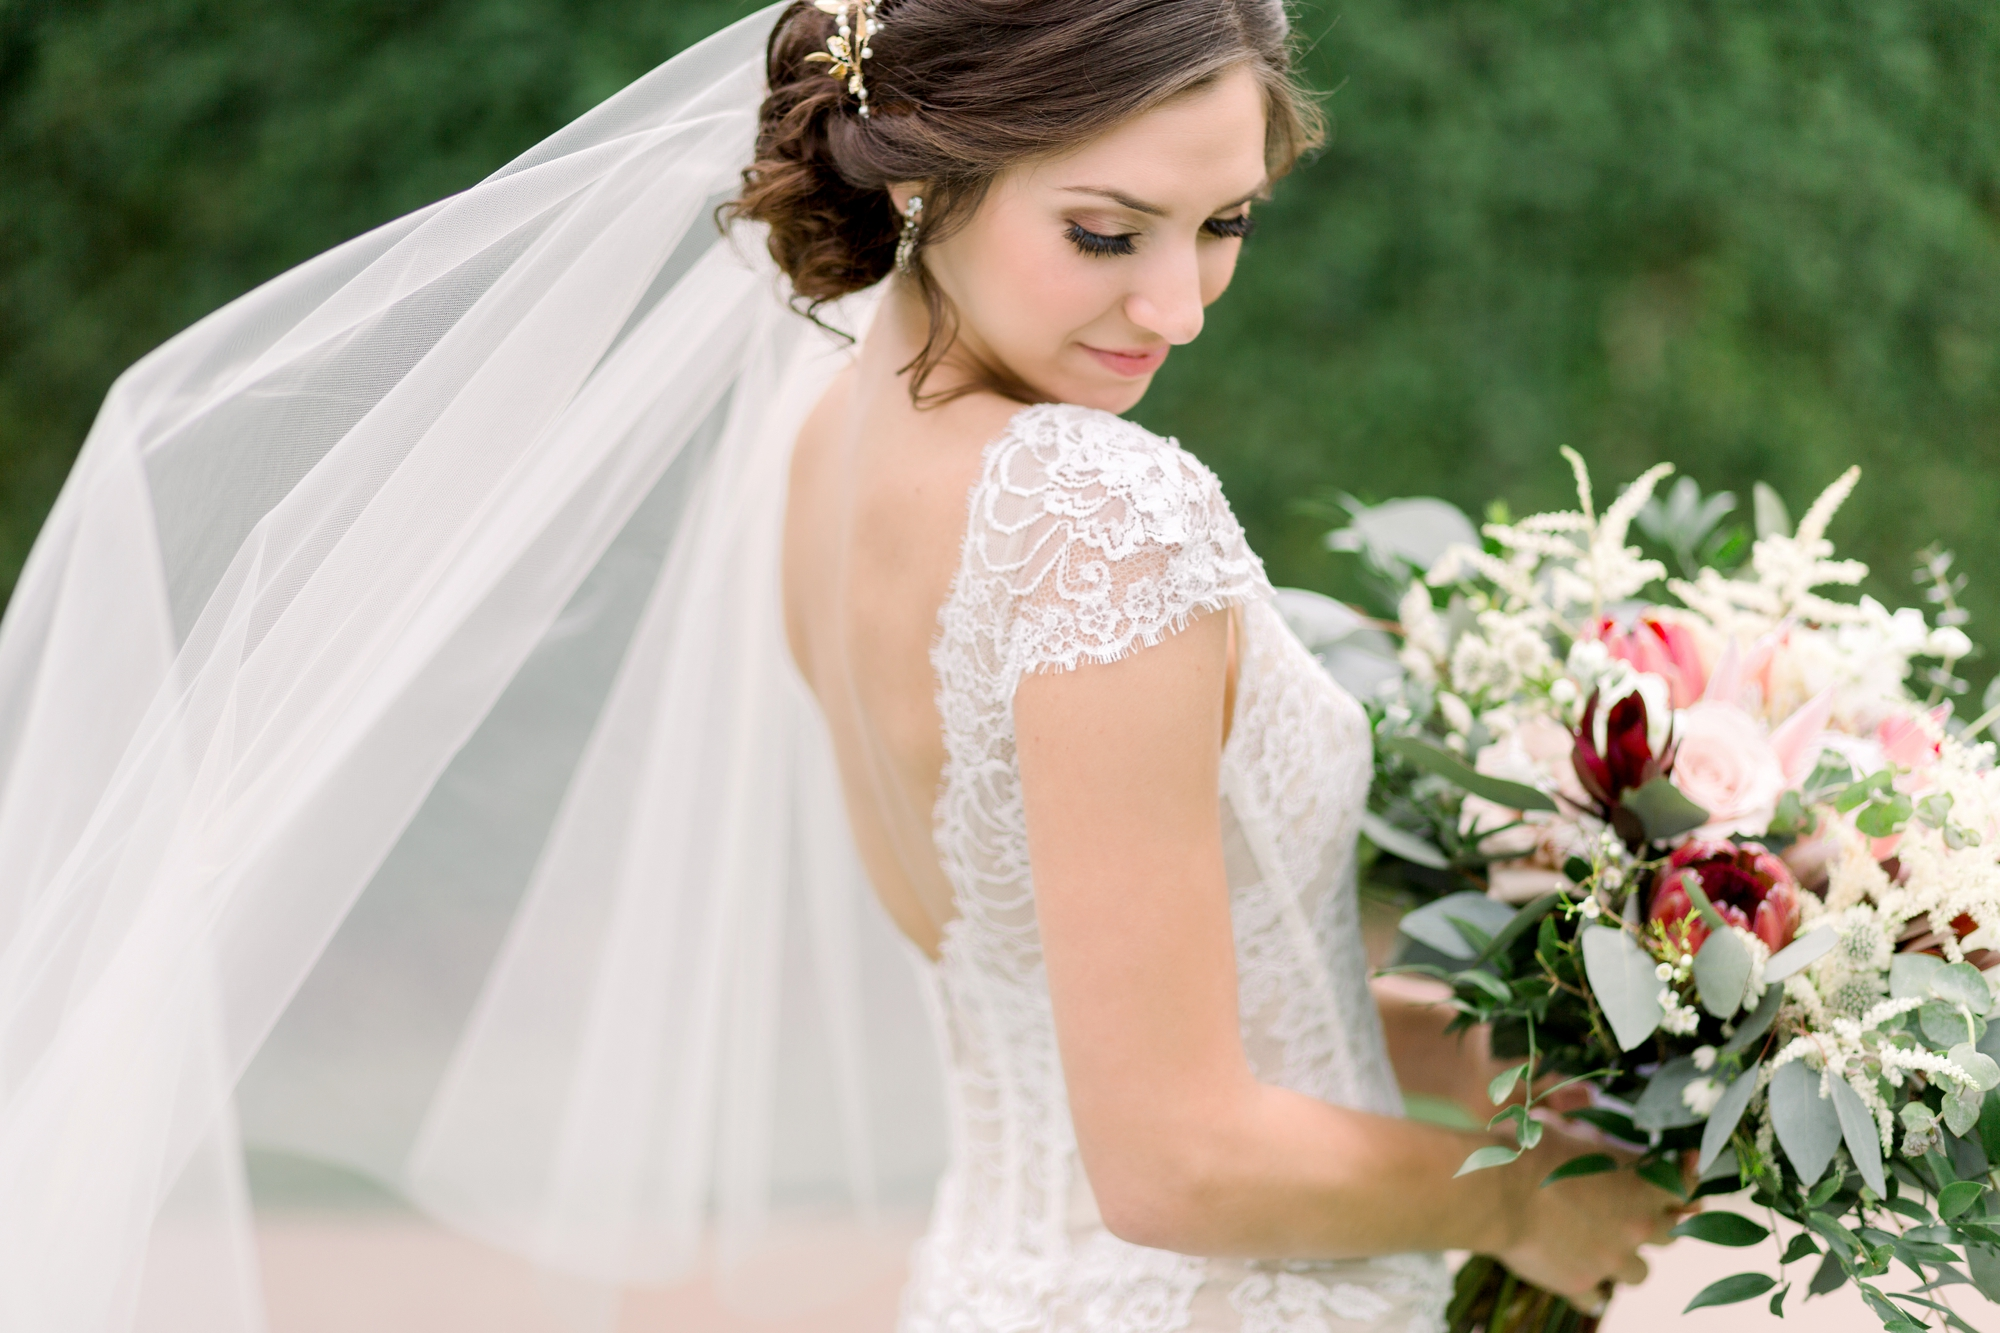 photos every bride needs on her wedding day